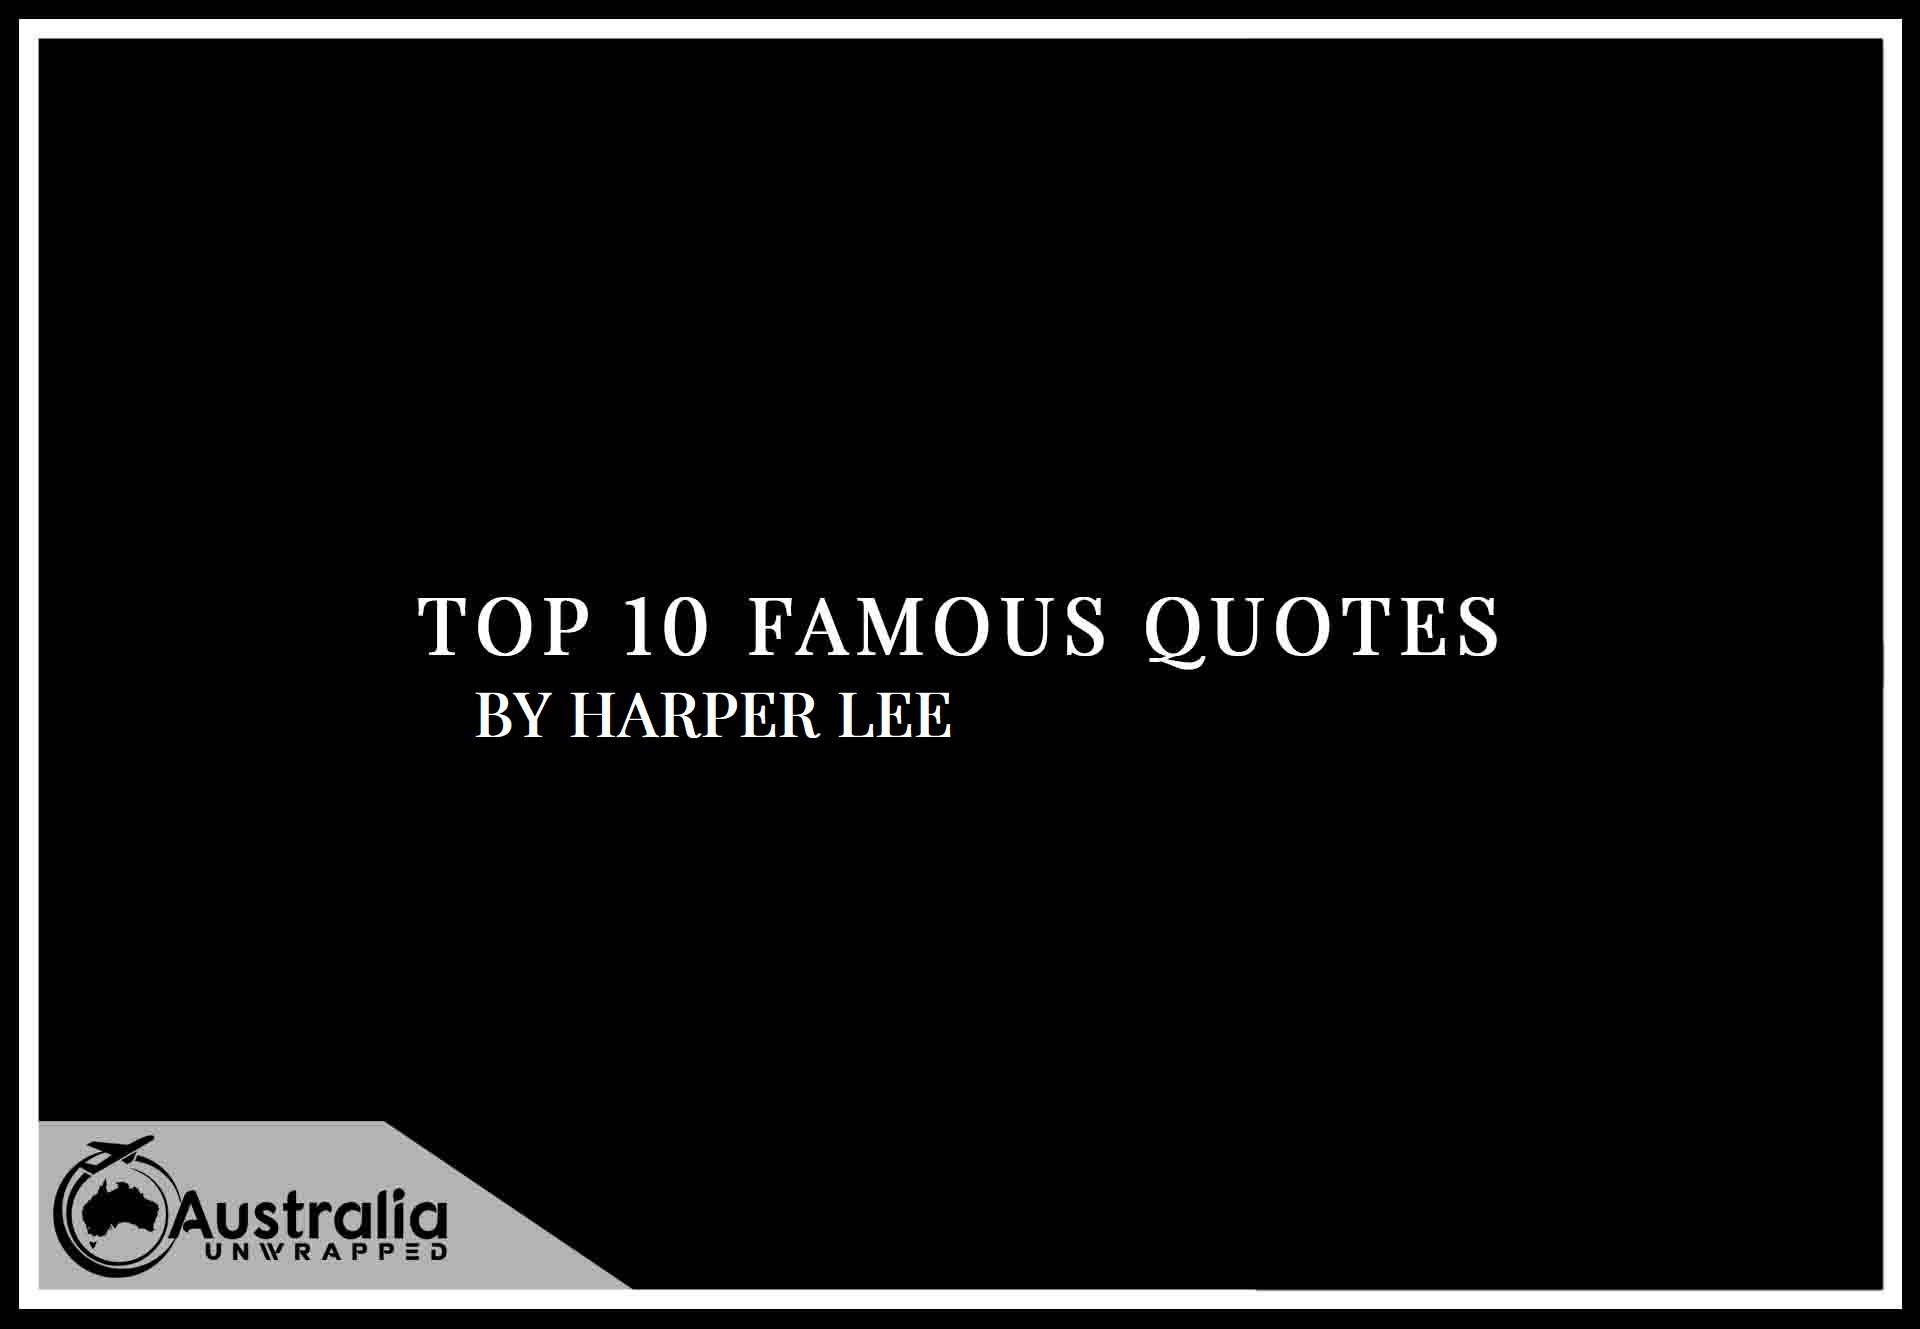 Top 10 Famous Quotes by Author Harper Lee